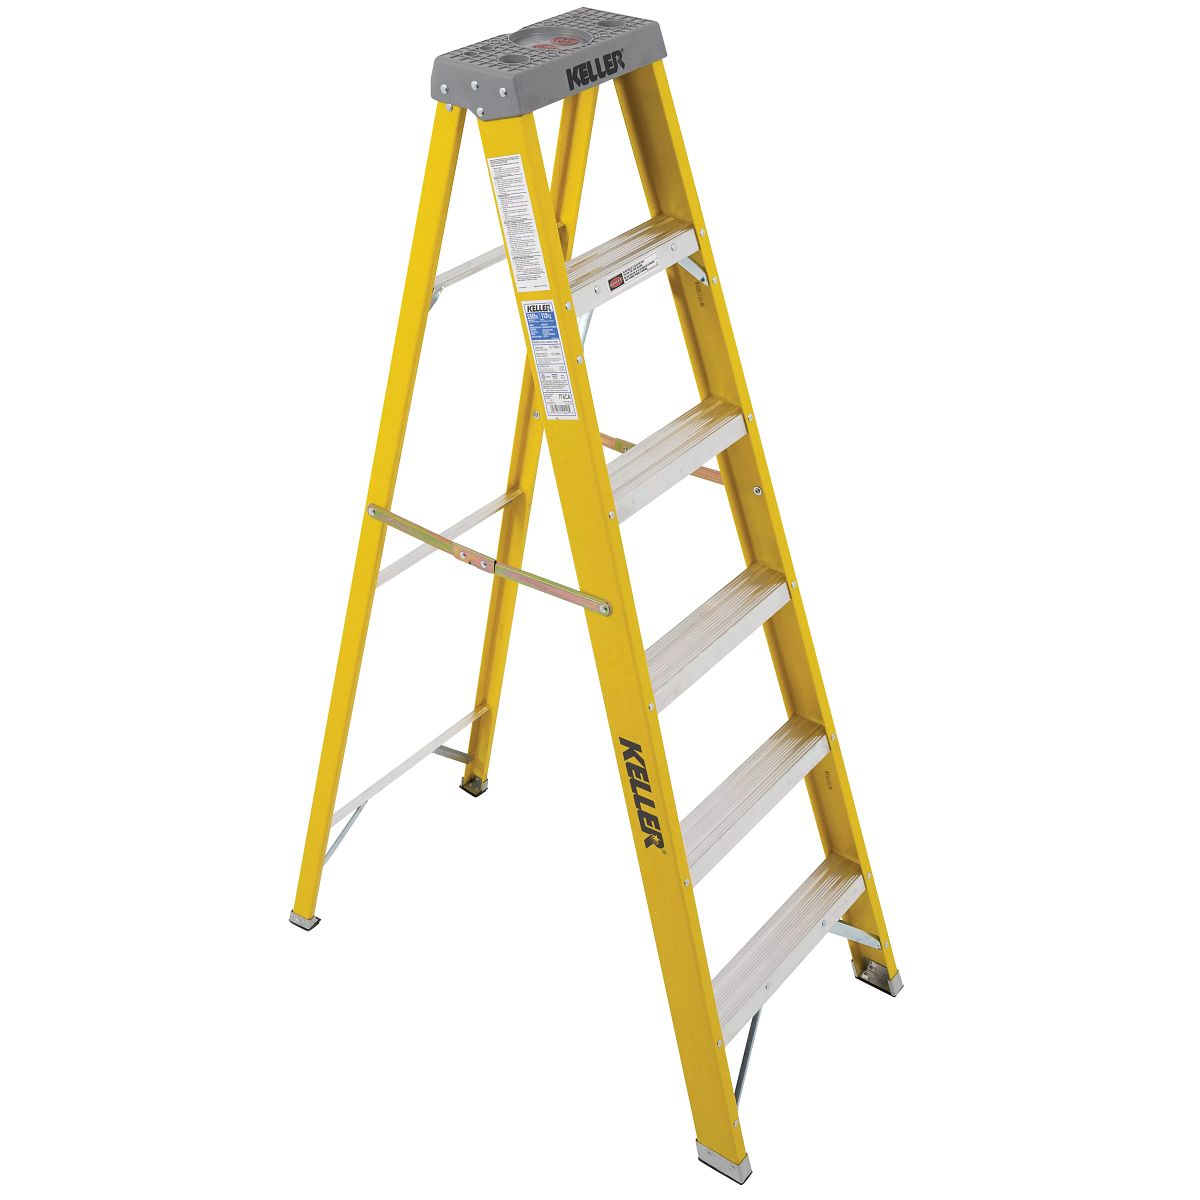 776 Step Ladders Keller Us